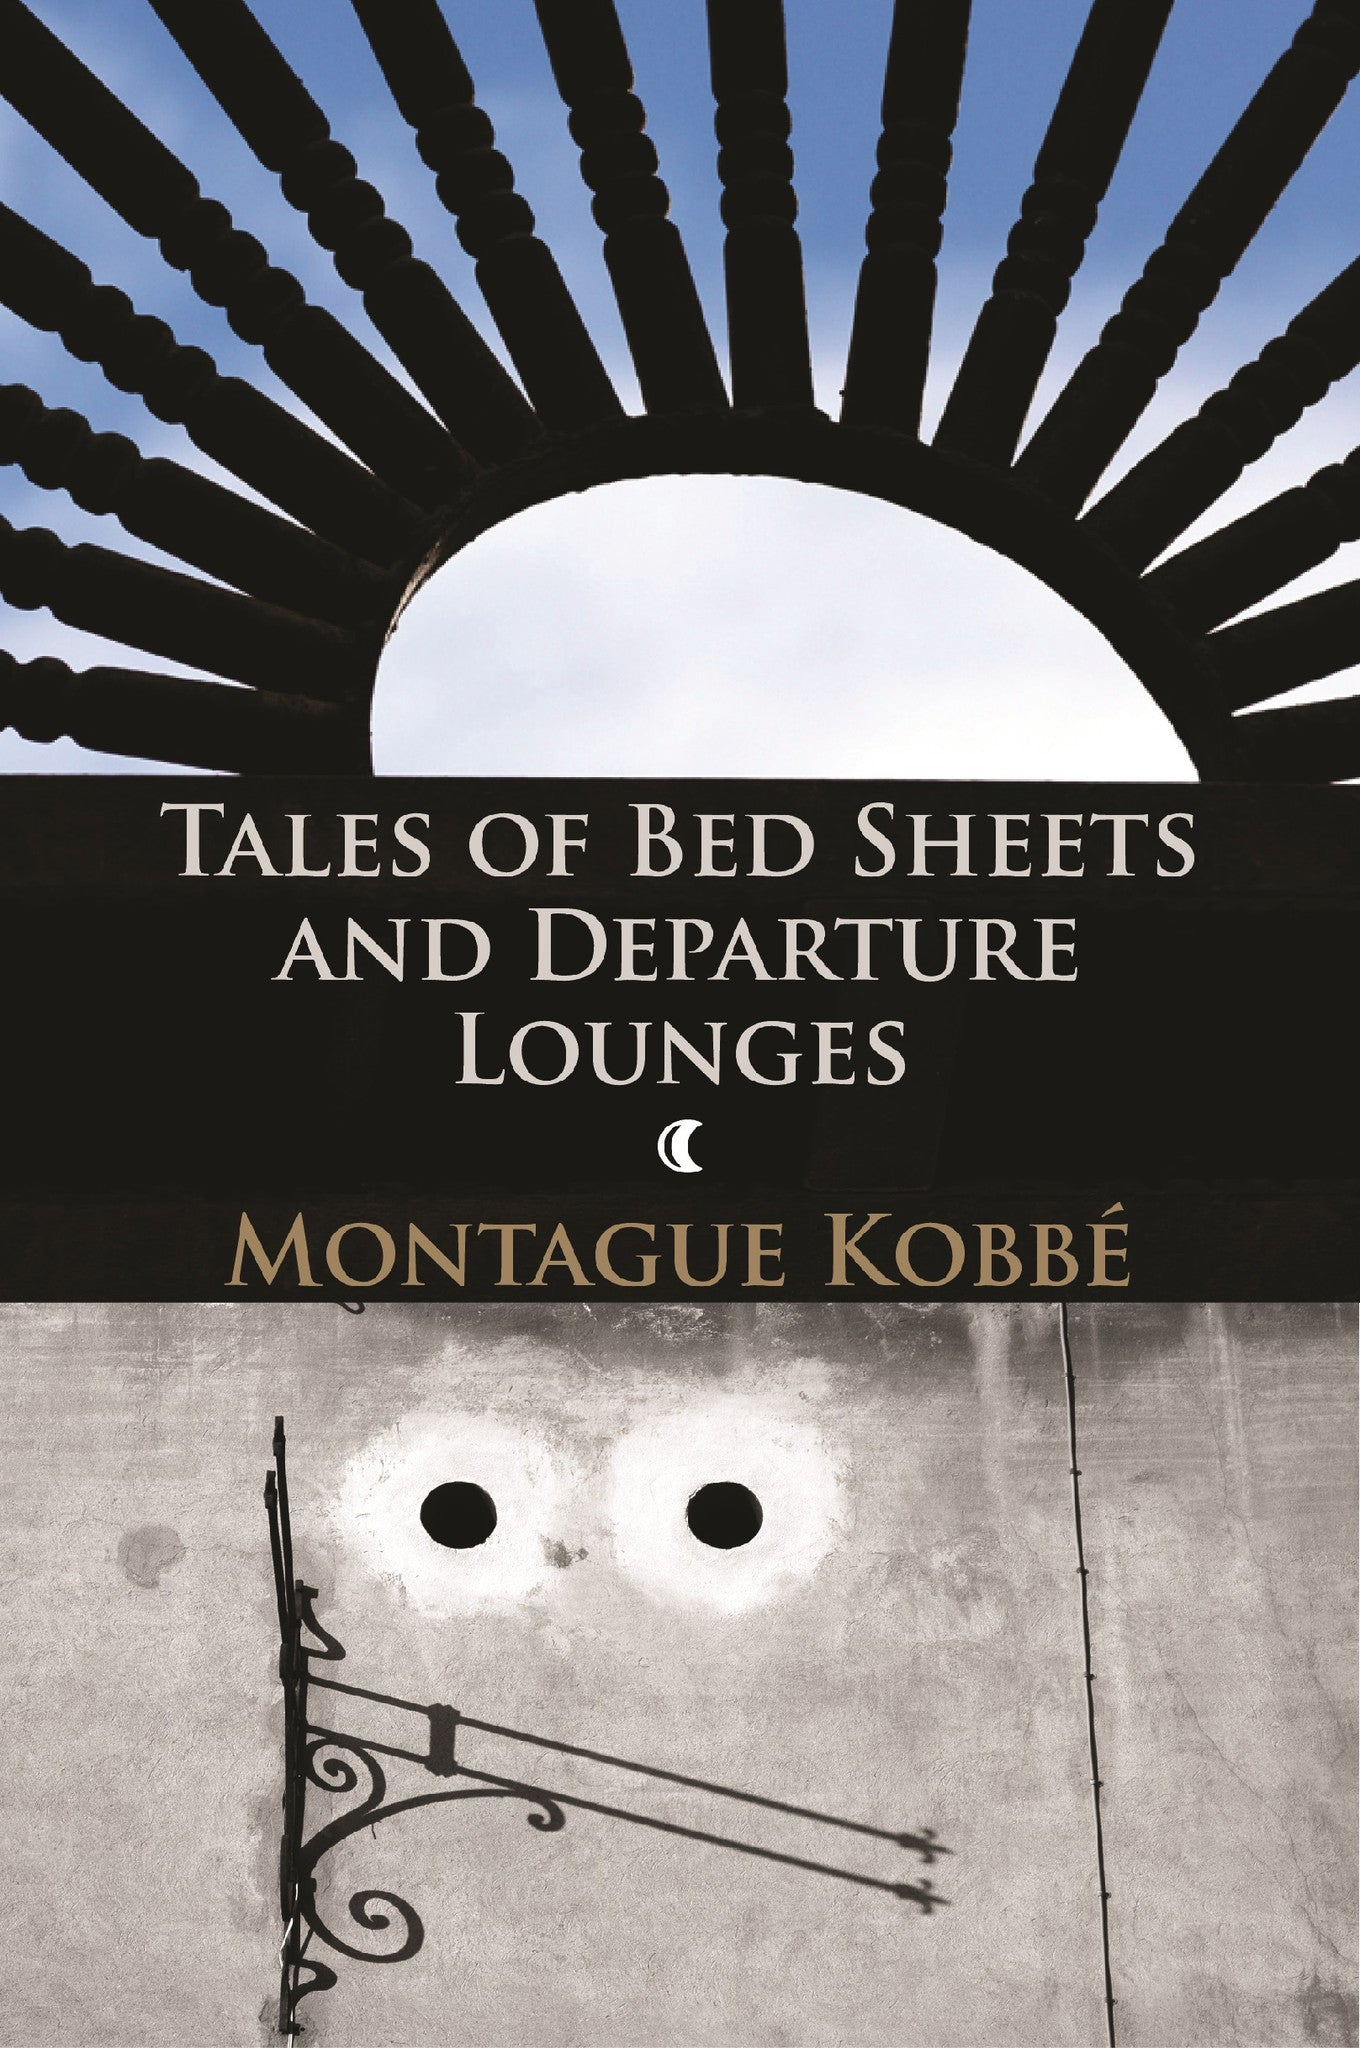 Tales of Bed Sheets and Departure Lounges